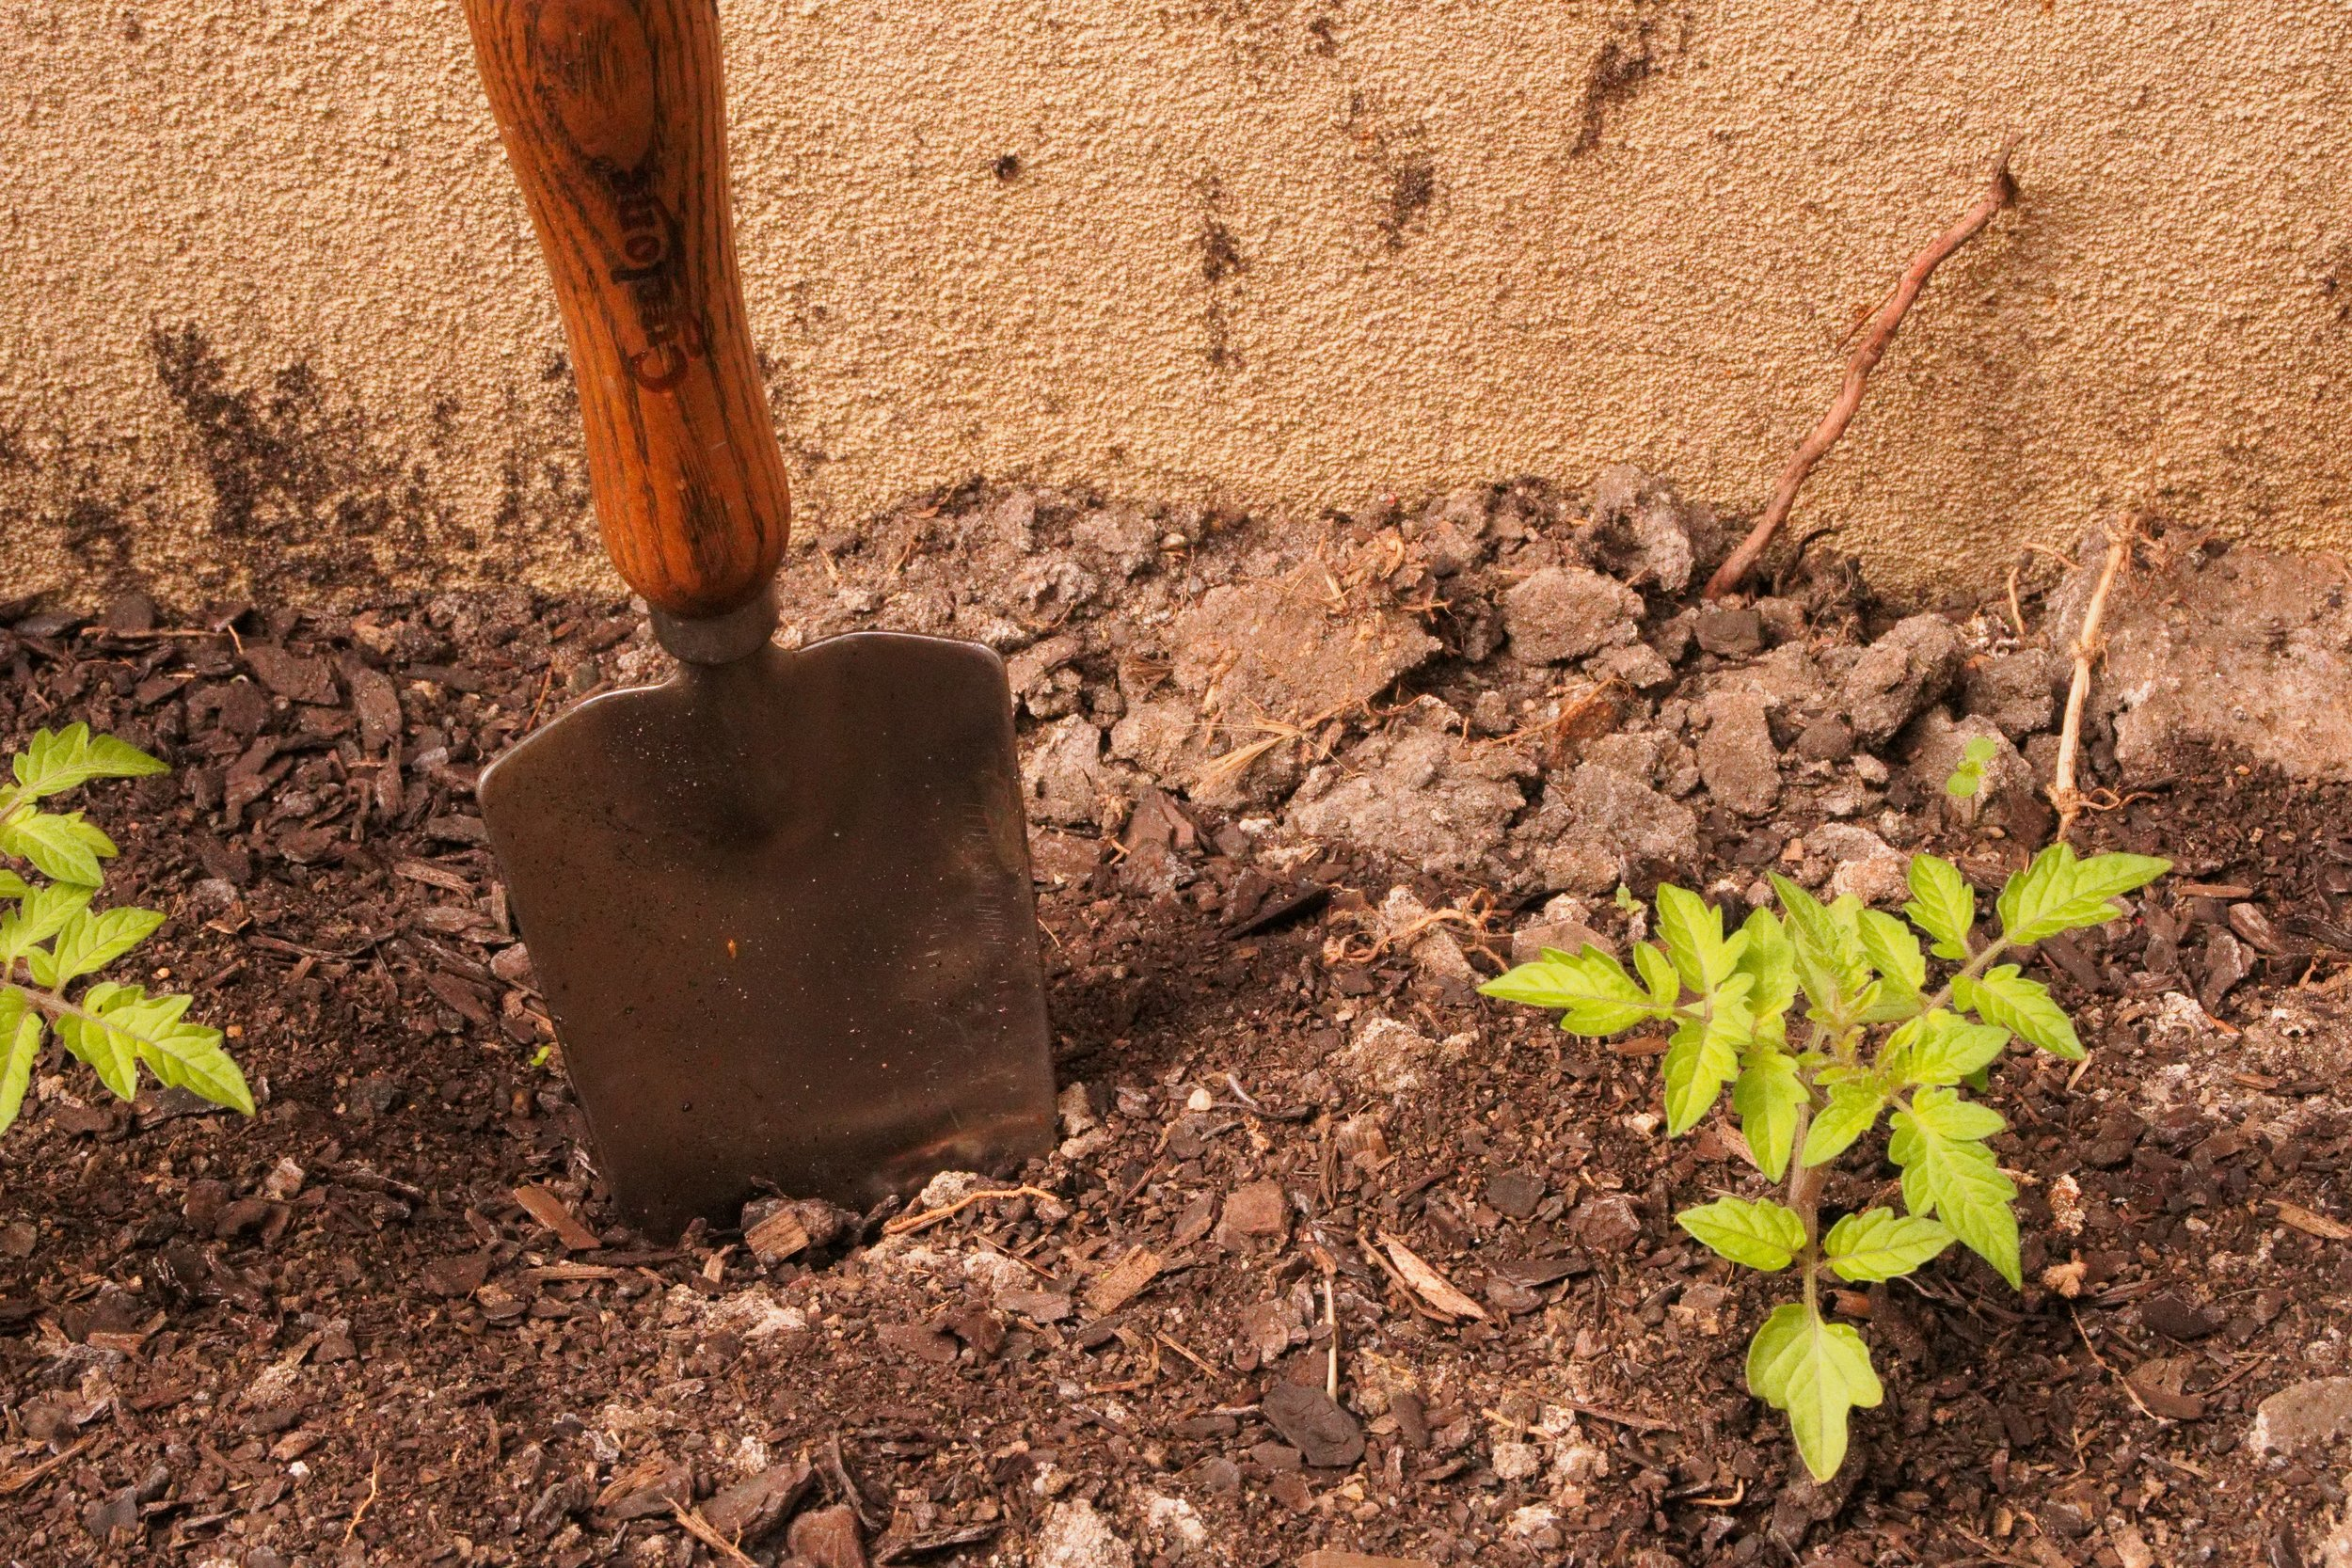 Plant young tomatoe seedlings deeper to allow for stronger root growth.